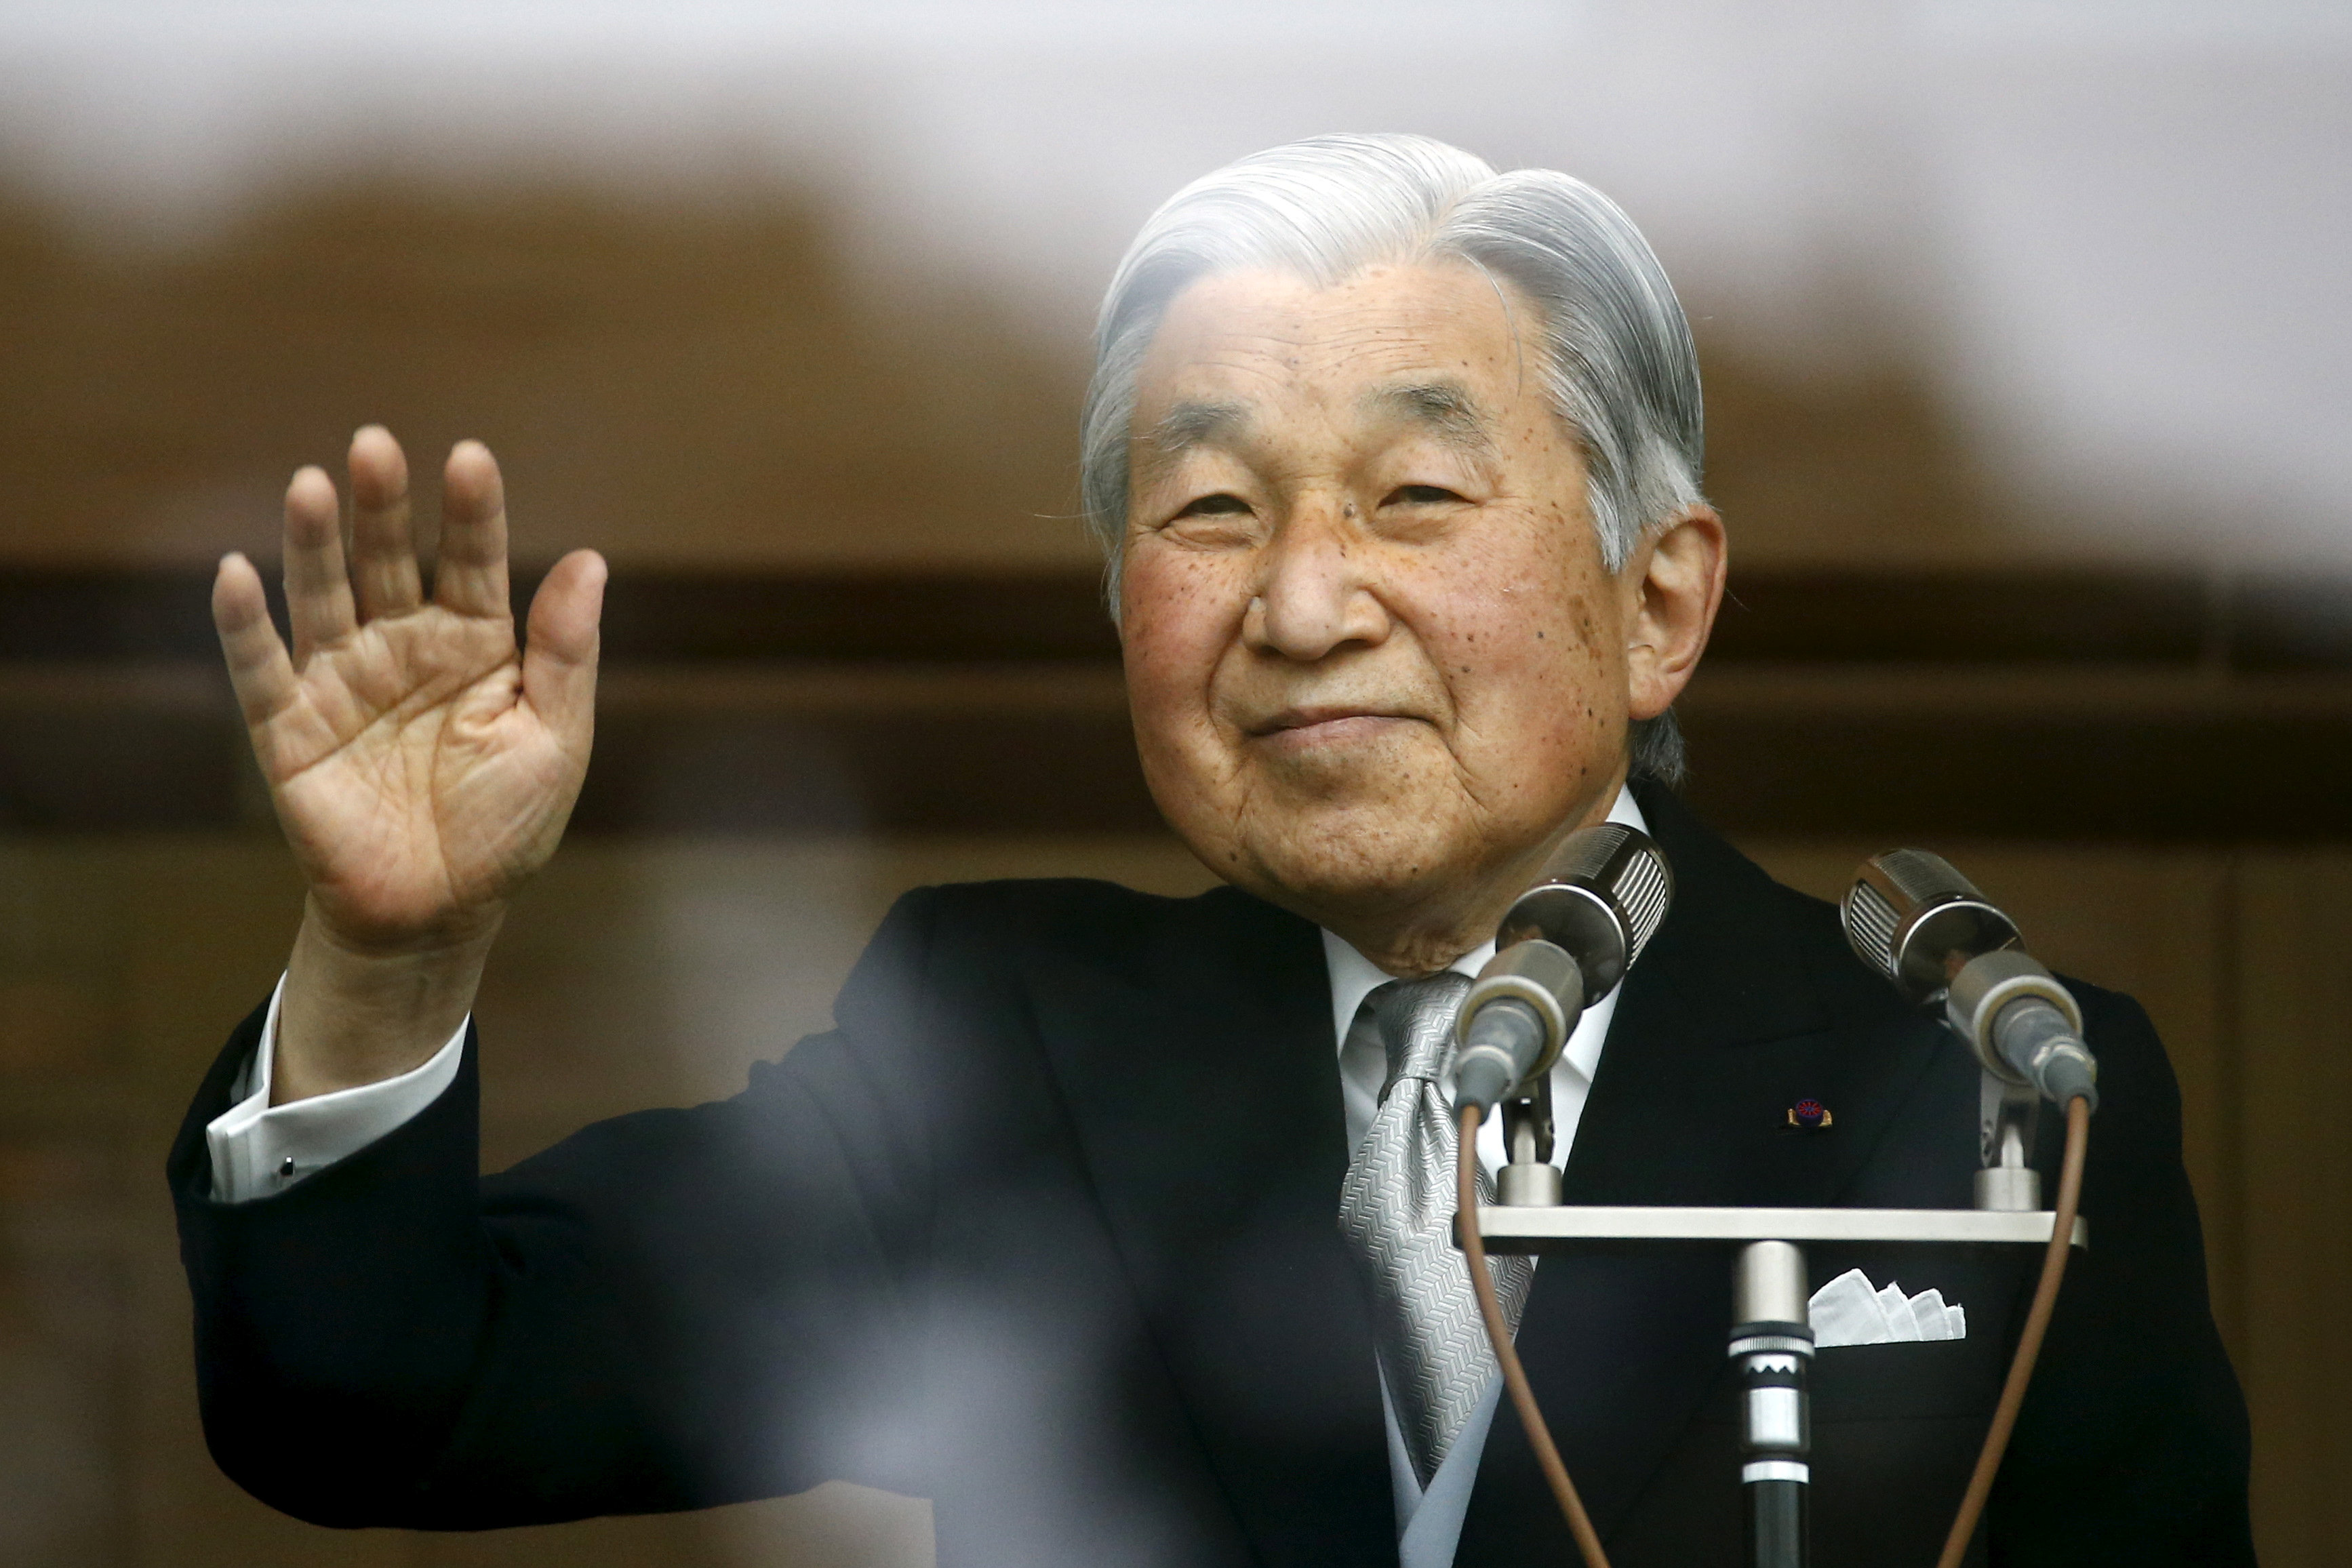 Japan's Emperor Akihito's waves to well-wishers at the Imperial Palace in Tokyo